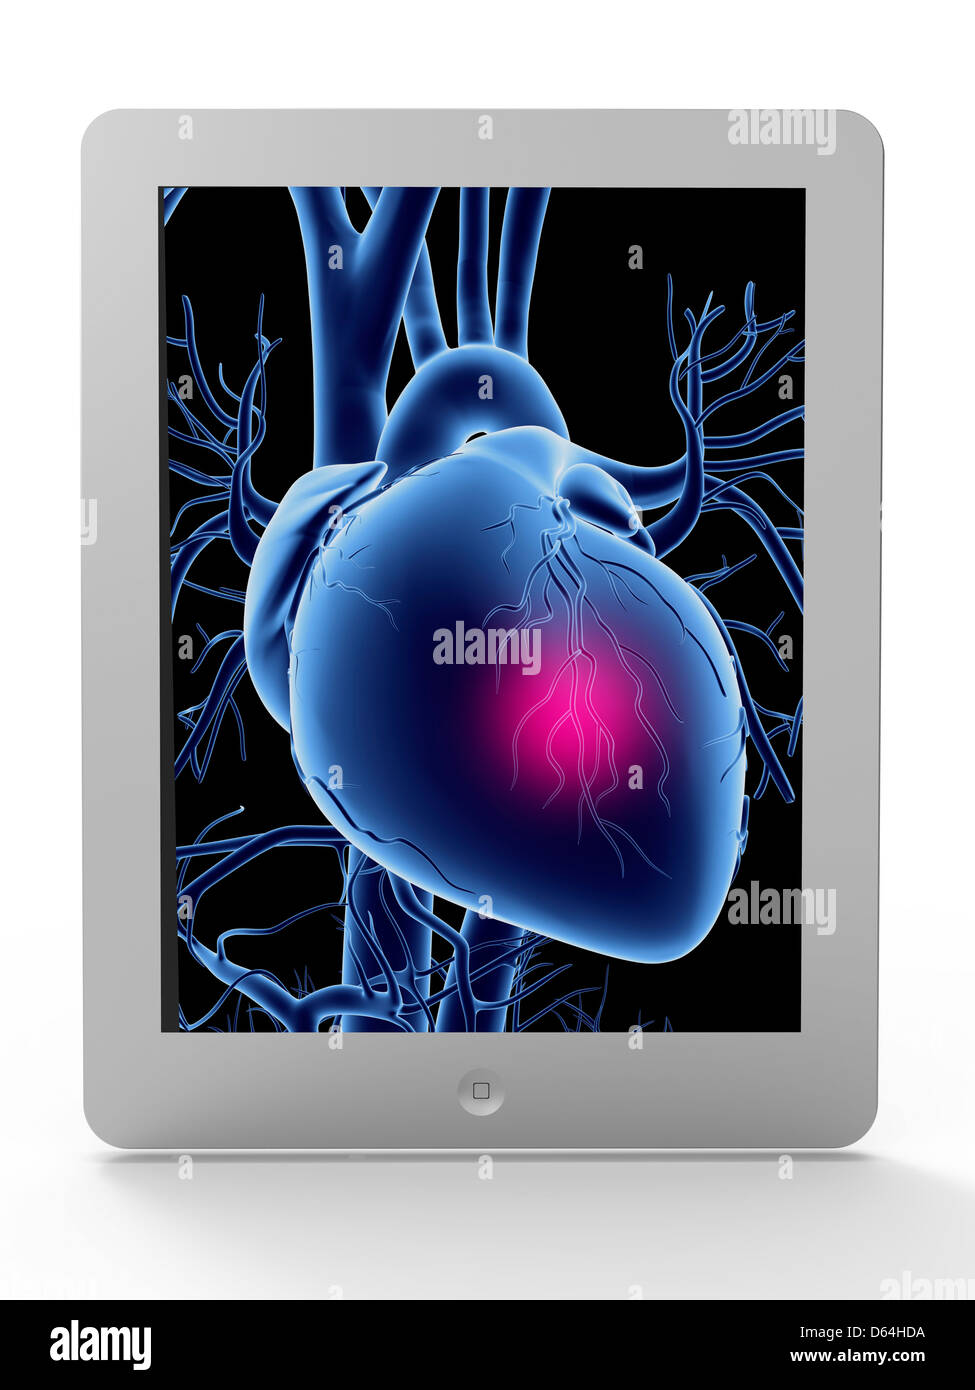 Tablet computer, heart attack artwork - Stock Image